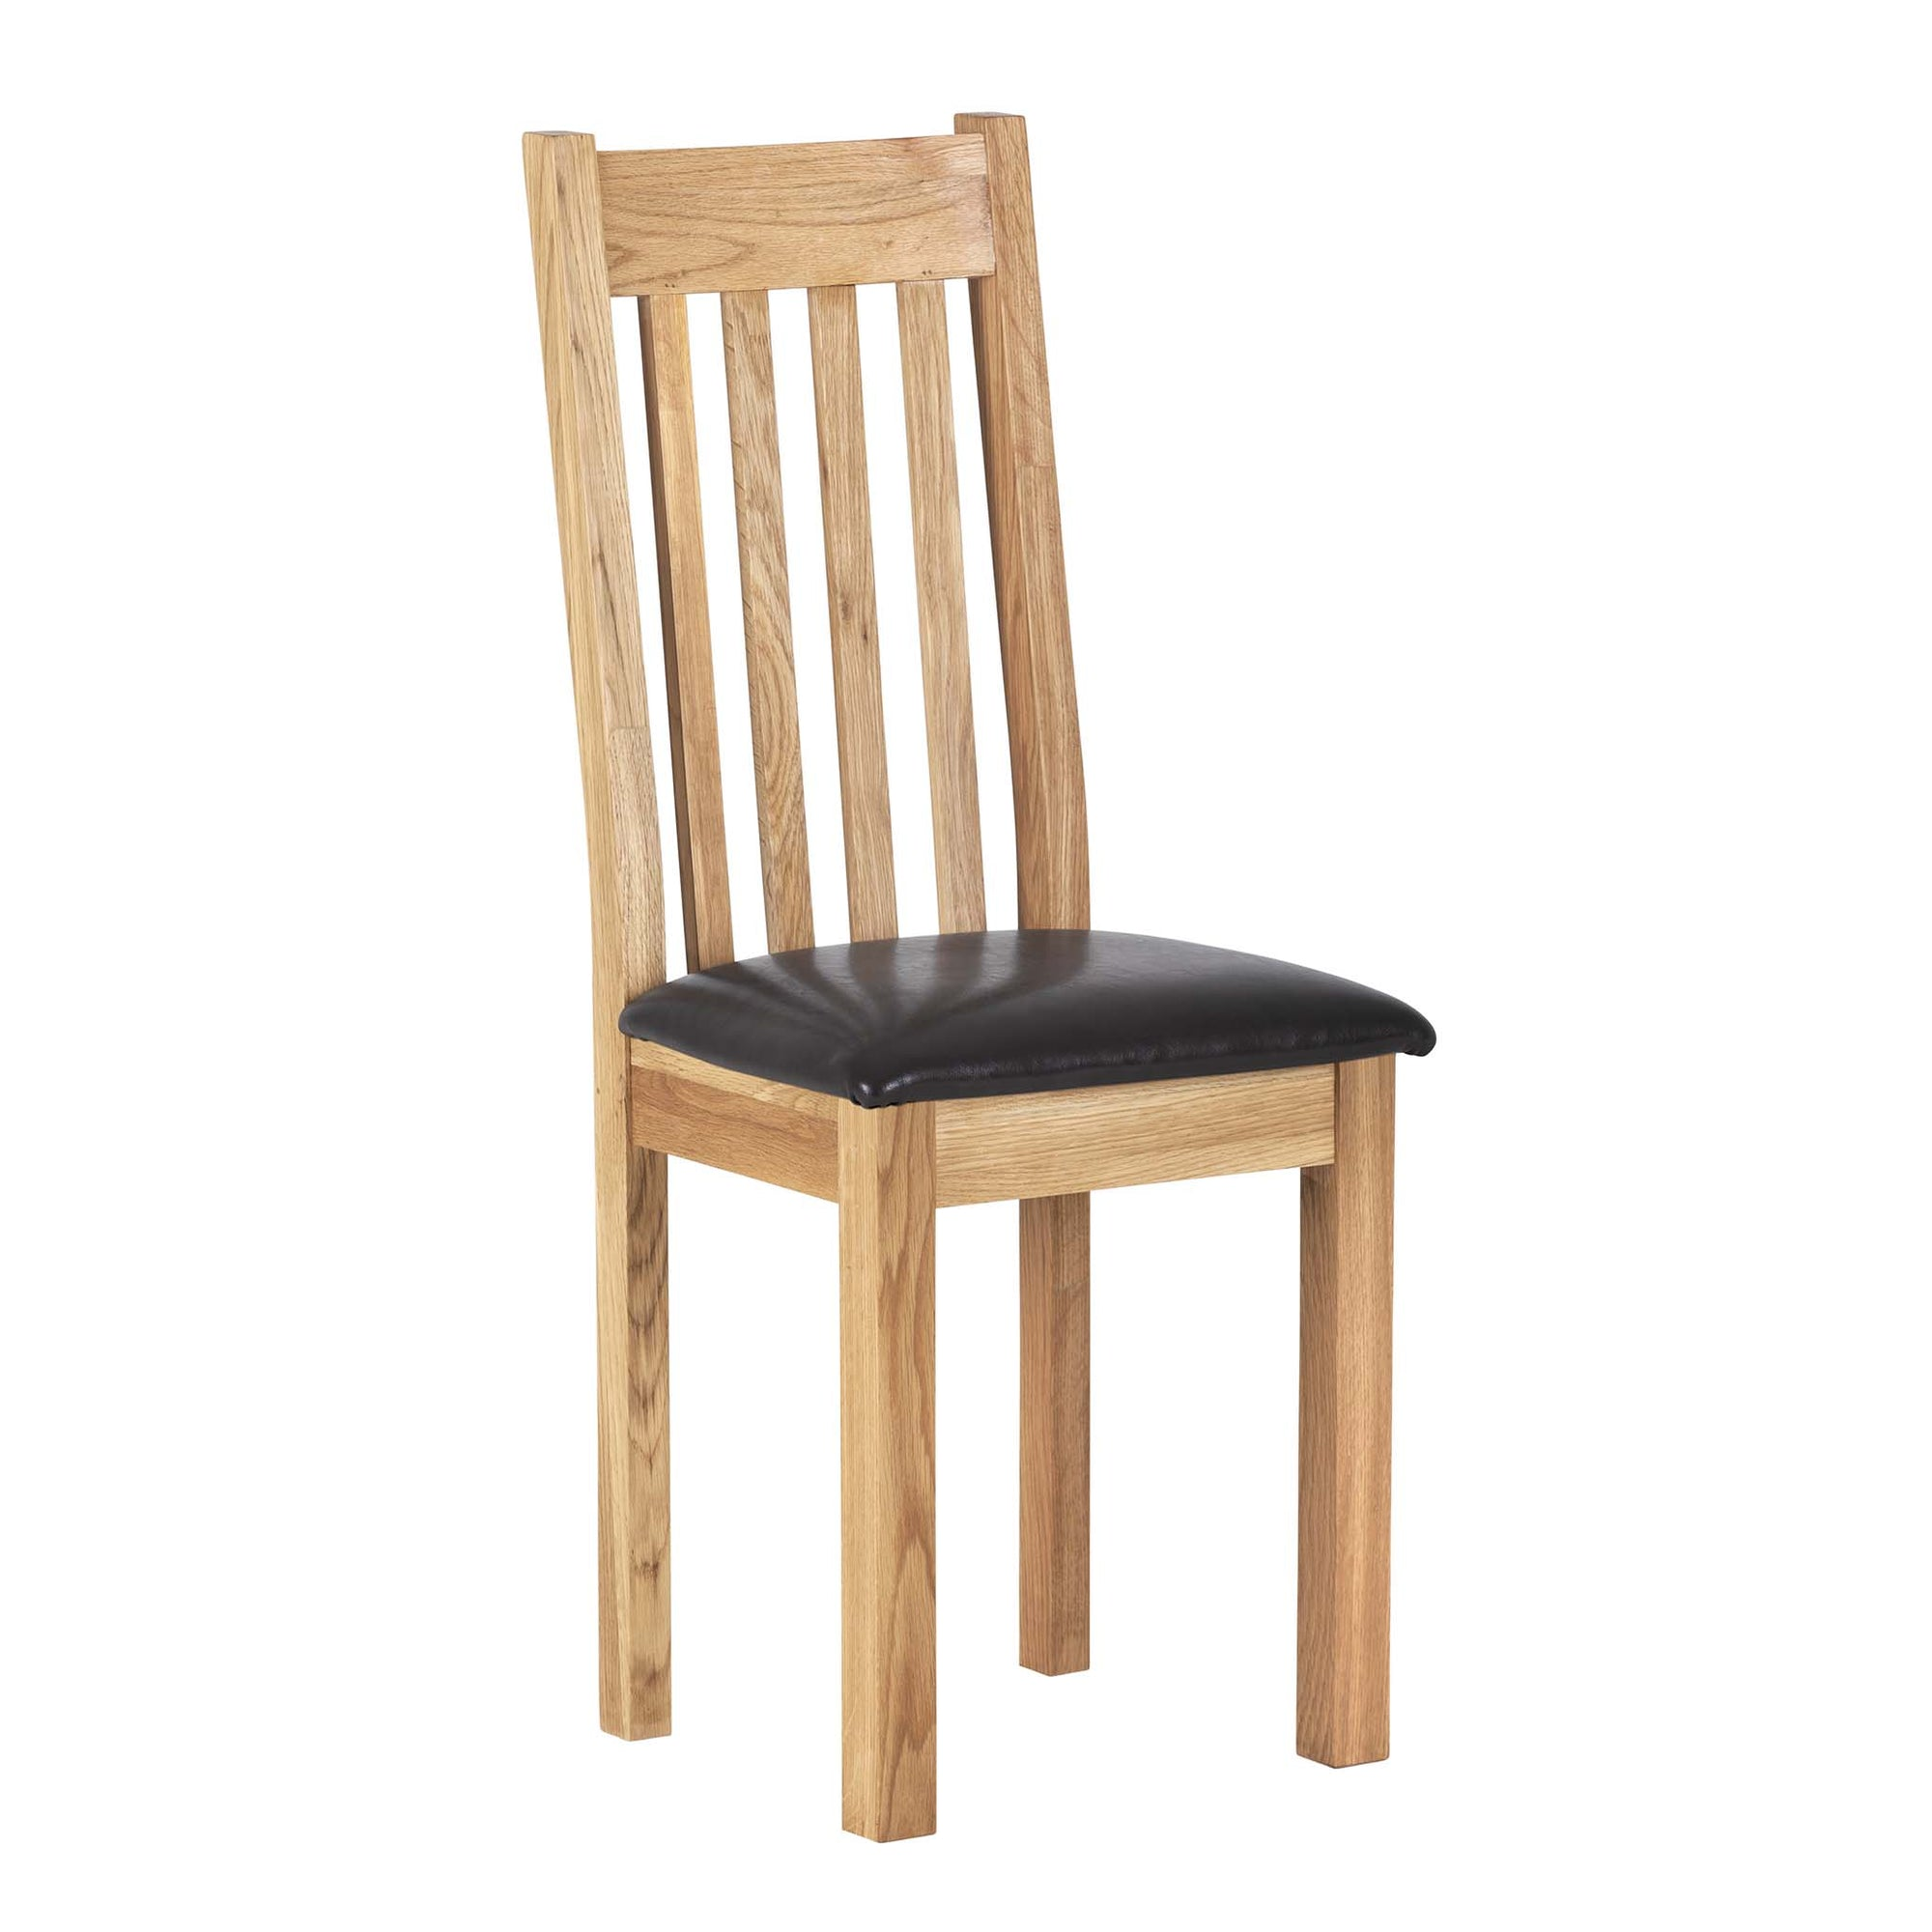 Charlestown Oak Dining Chair with Bi-Cast Leather Seat by Roseland Furniture